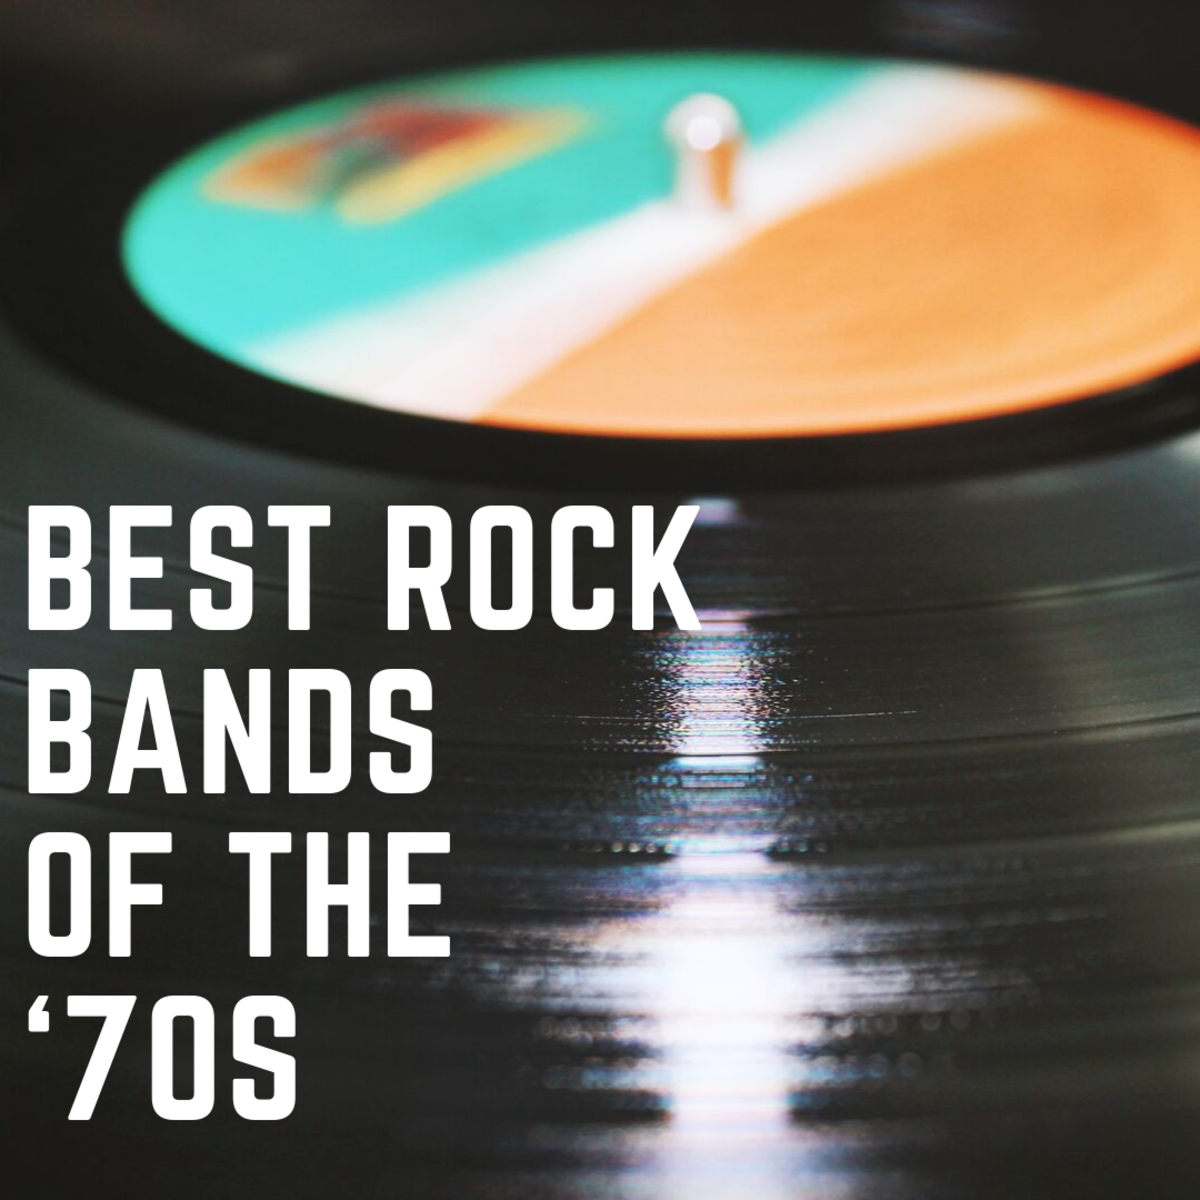 100 Best Rock Bands of the '70s